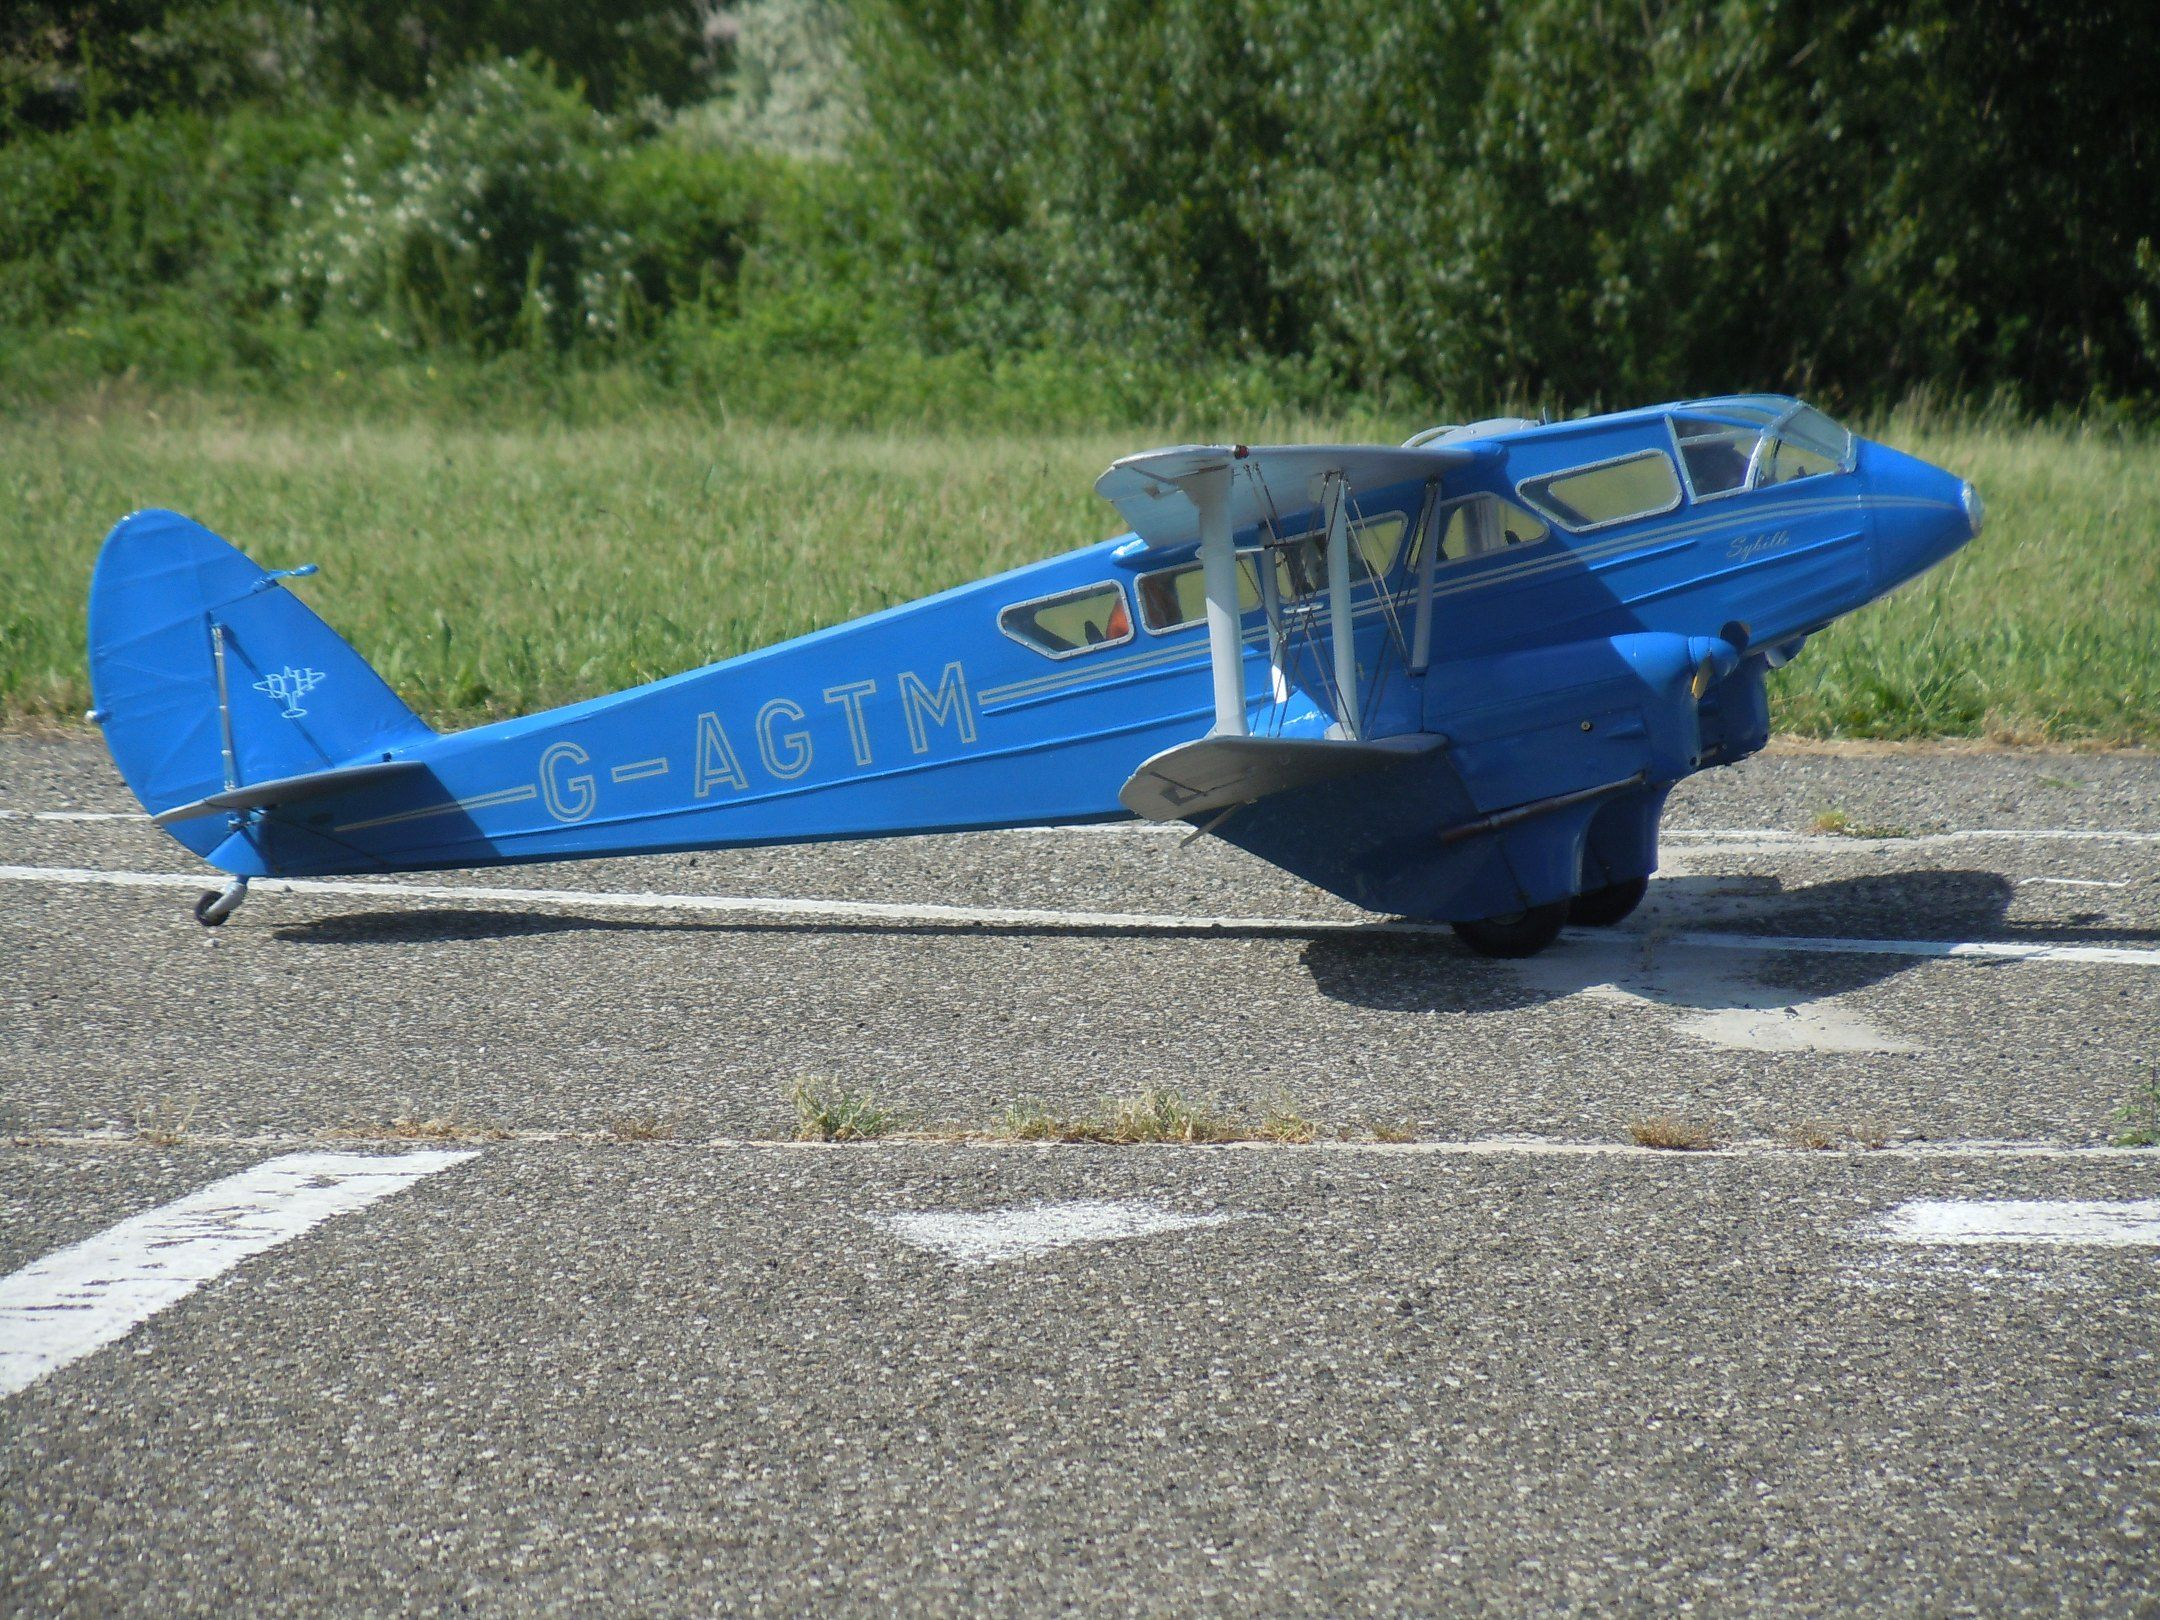 Jerry Bates - DeHavilland DH.89a Dragon Rapide - Parts Set